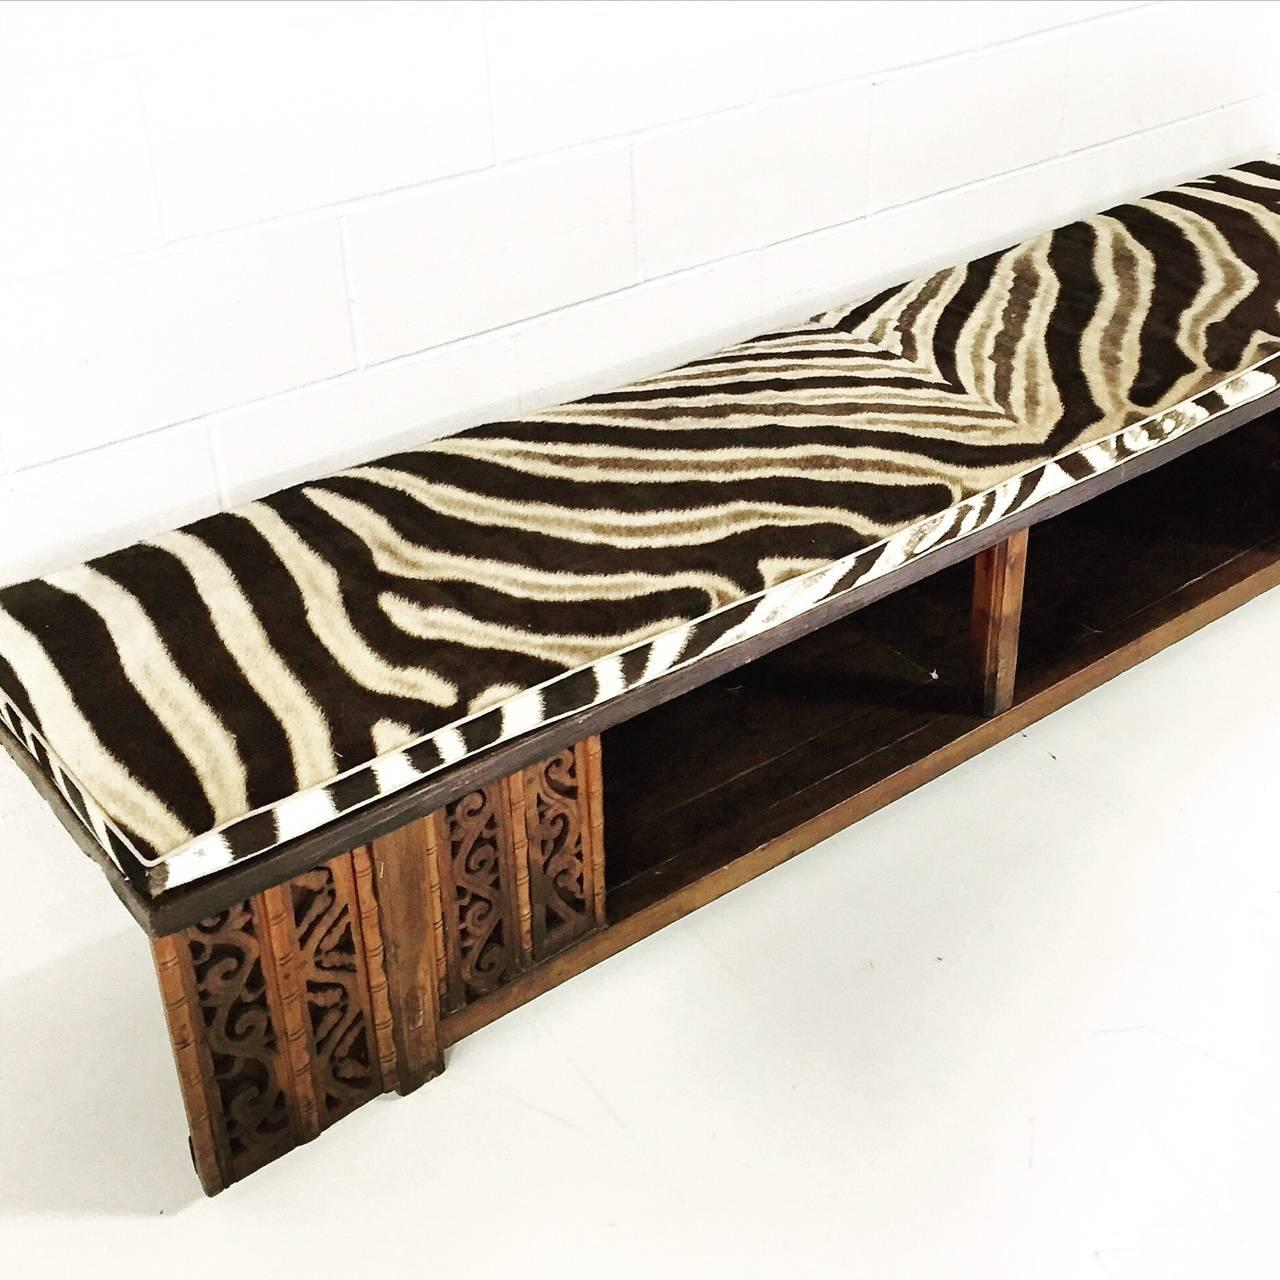 Vintage Carved Chinese Bench With Zebra Hide Cushion For Sale At 1stdibs